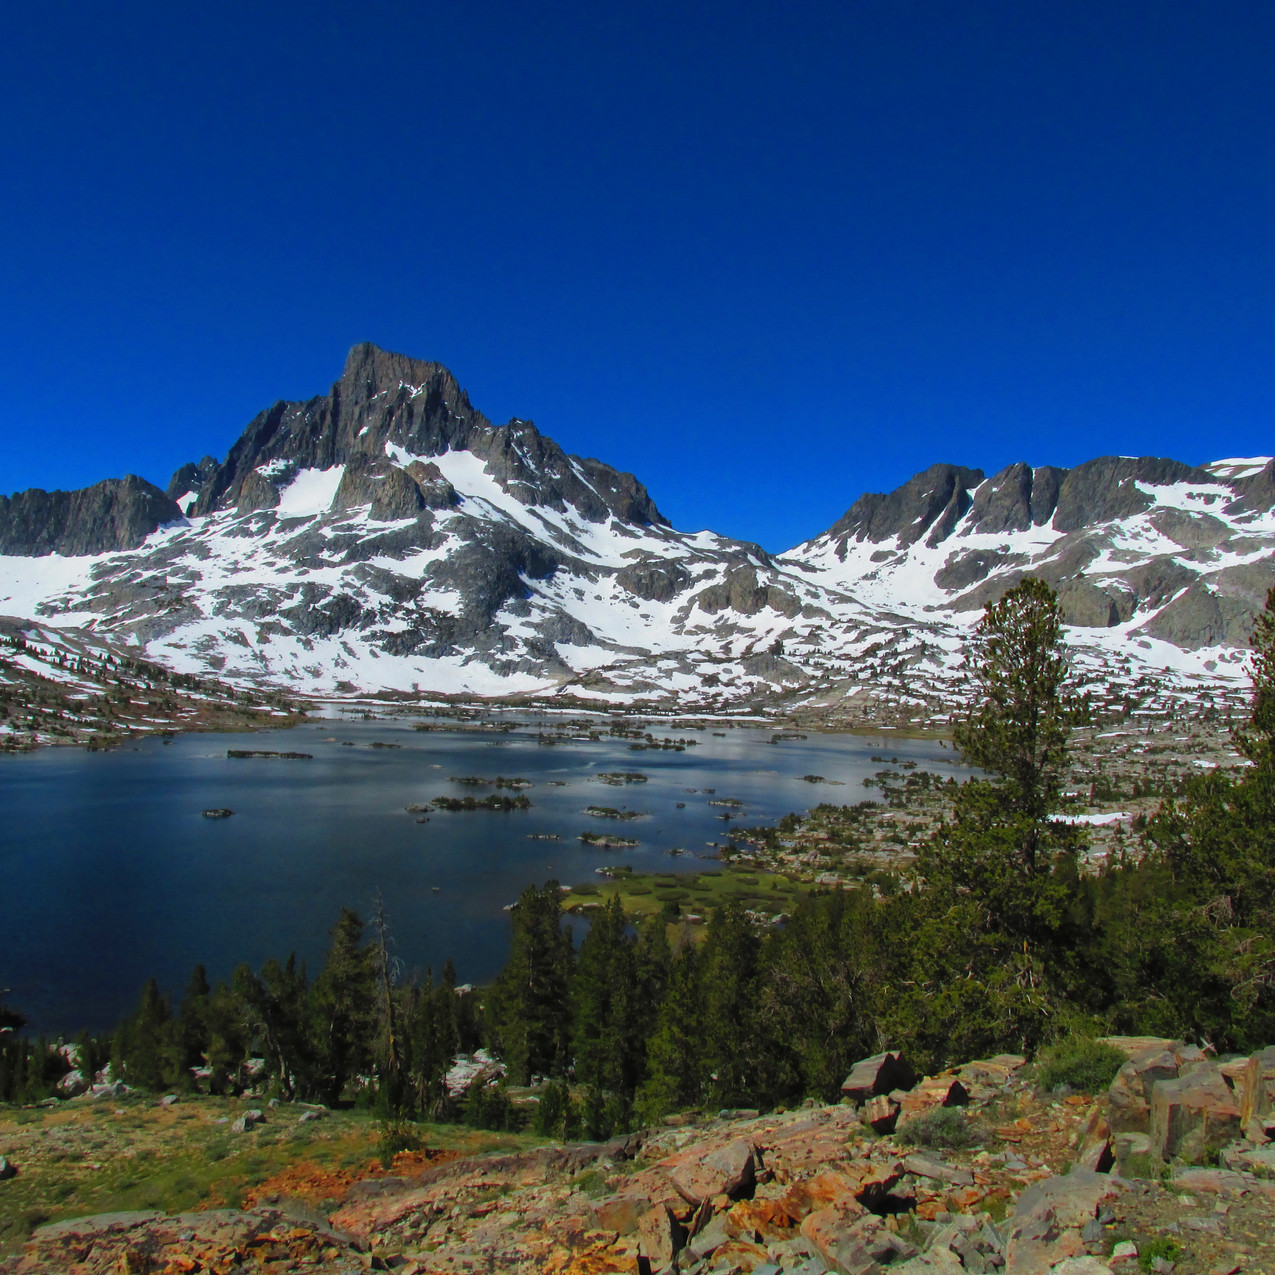 One of several lakes I hiked past on the John Muir Trail.